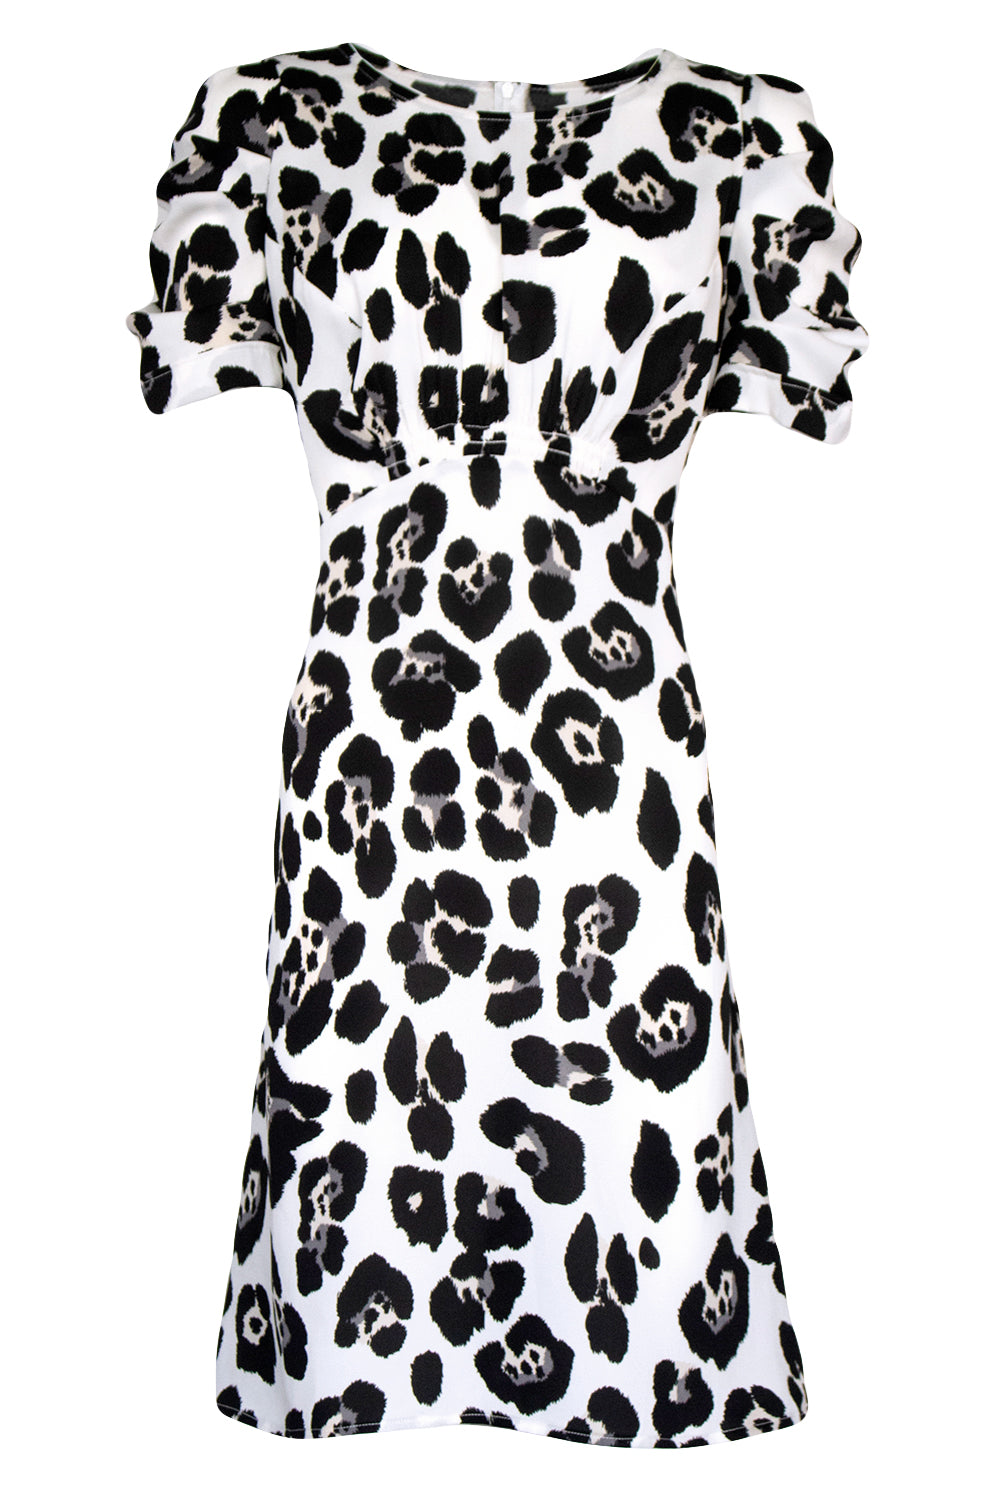 Pretty Polly Dress